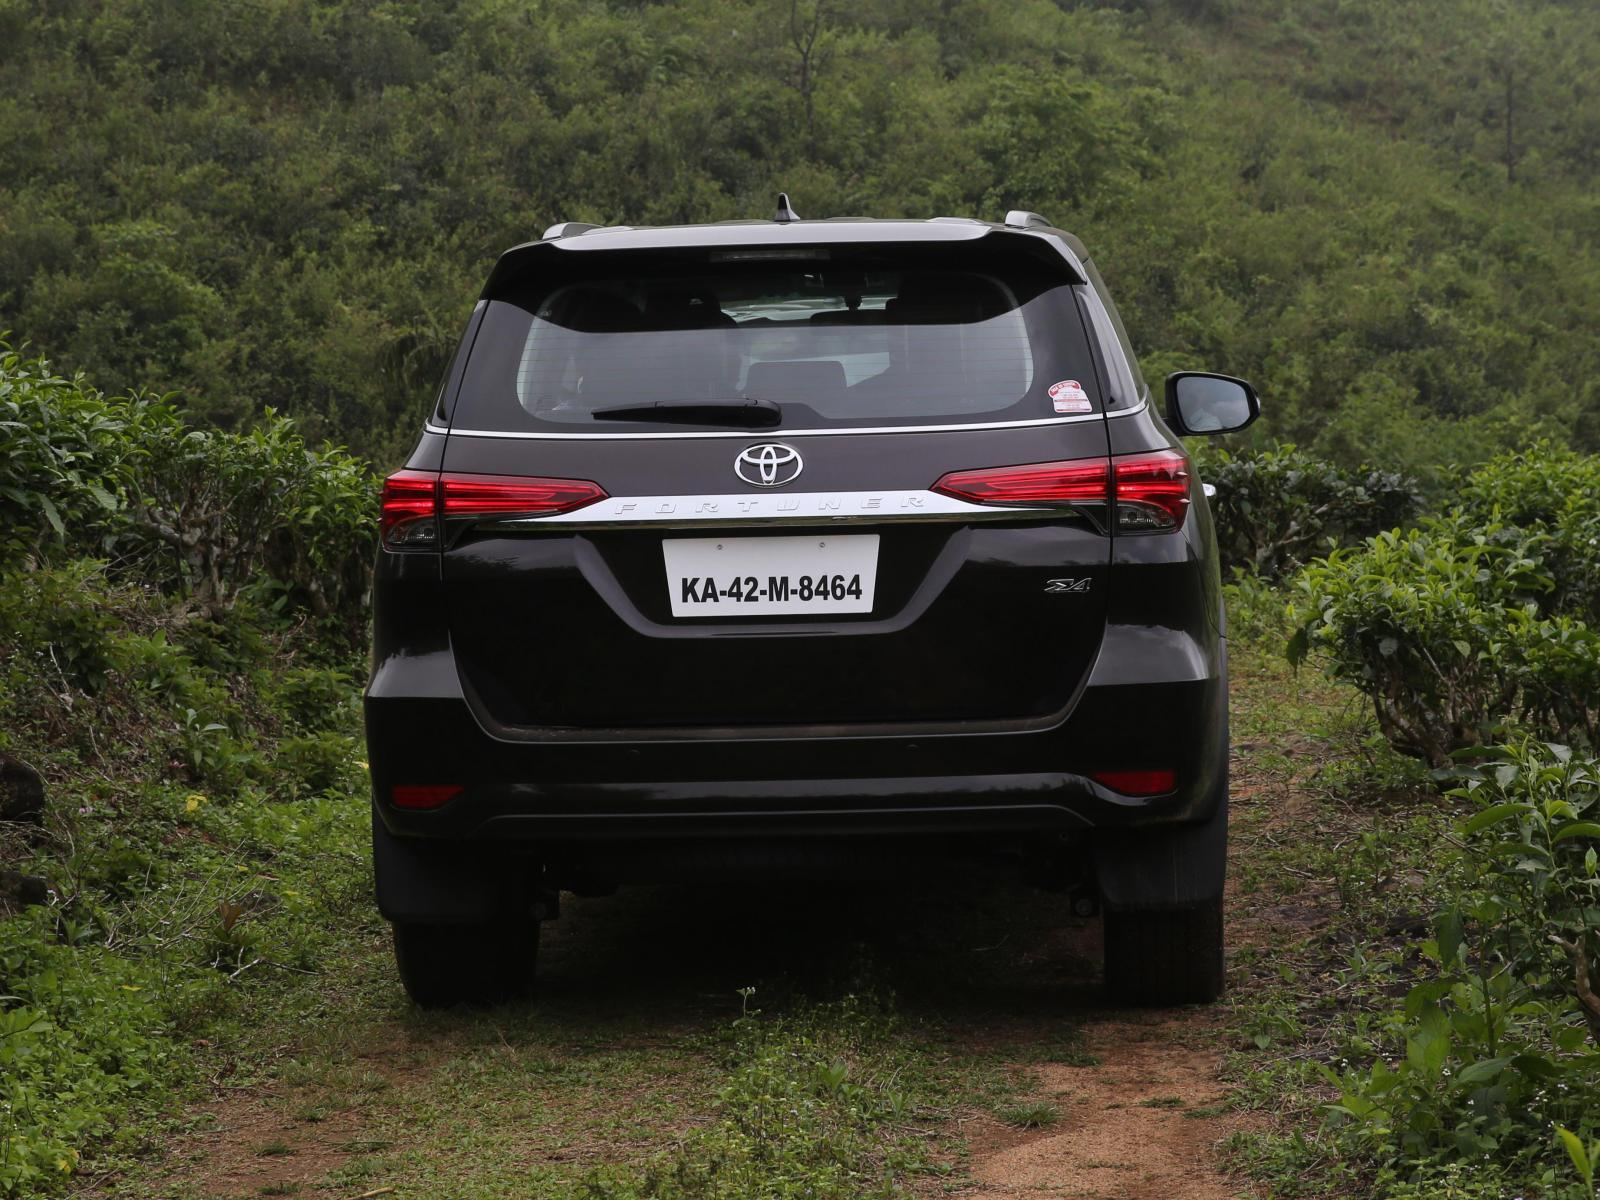 Toyota Fortuner wallpapers, free download